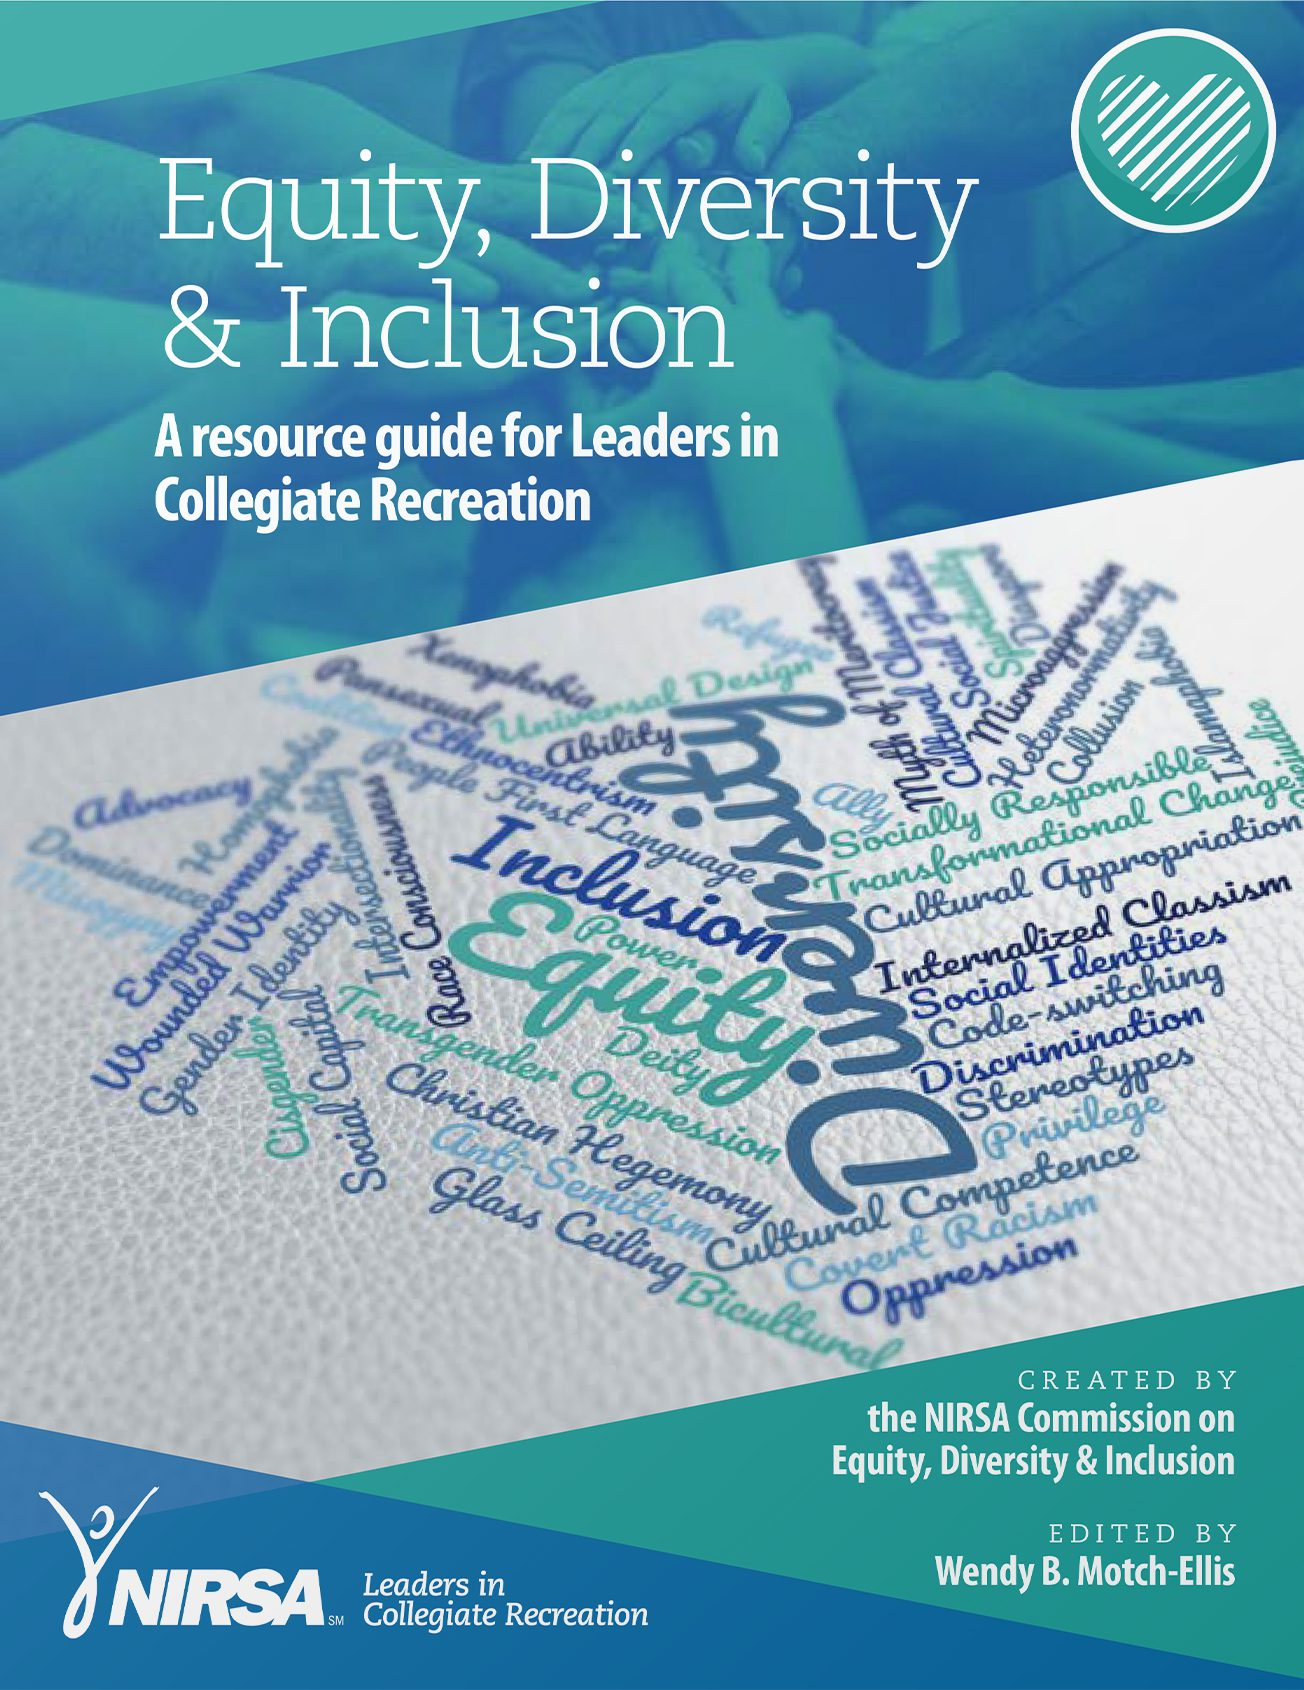 Download the NIRSA Equity, Diversity, & Inclusion Resource Guide